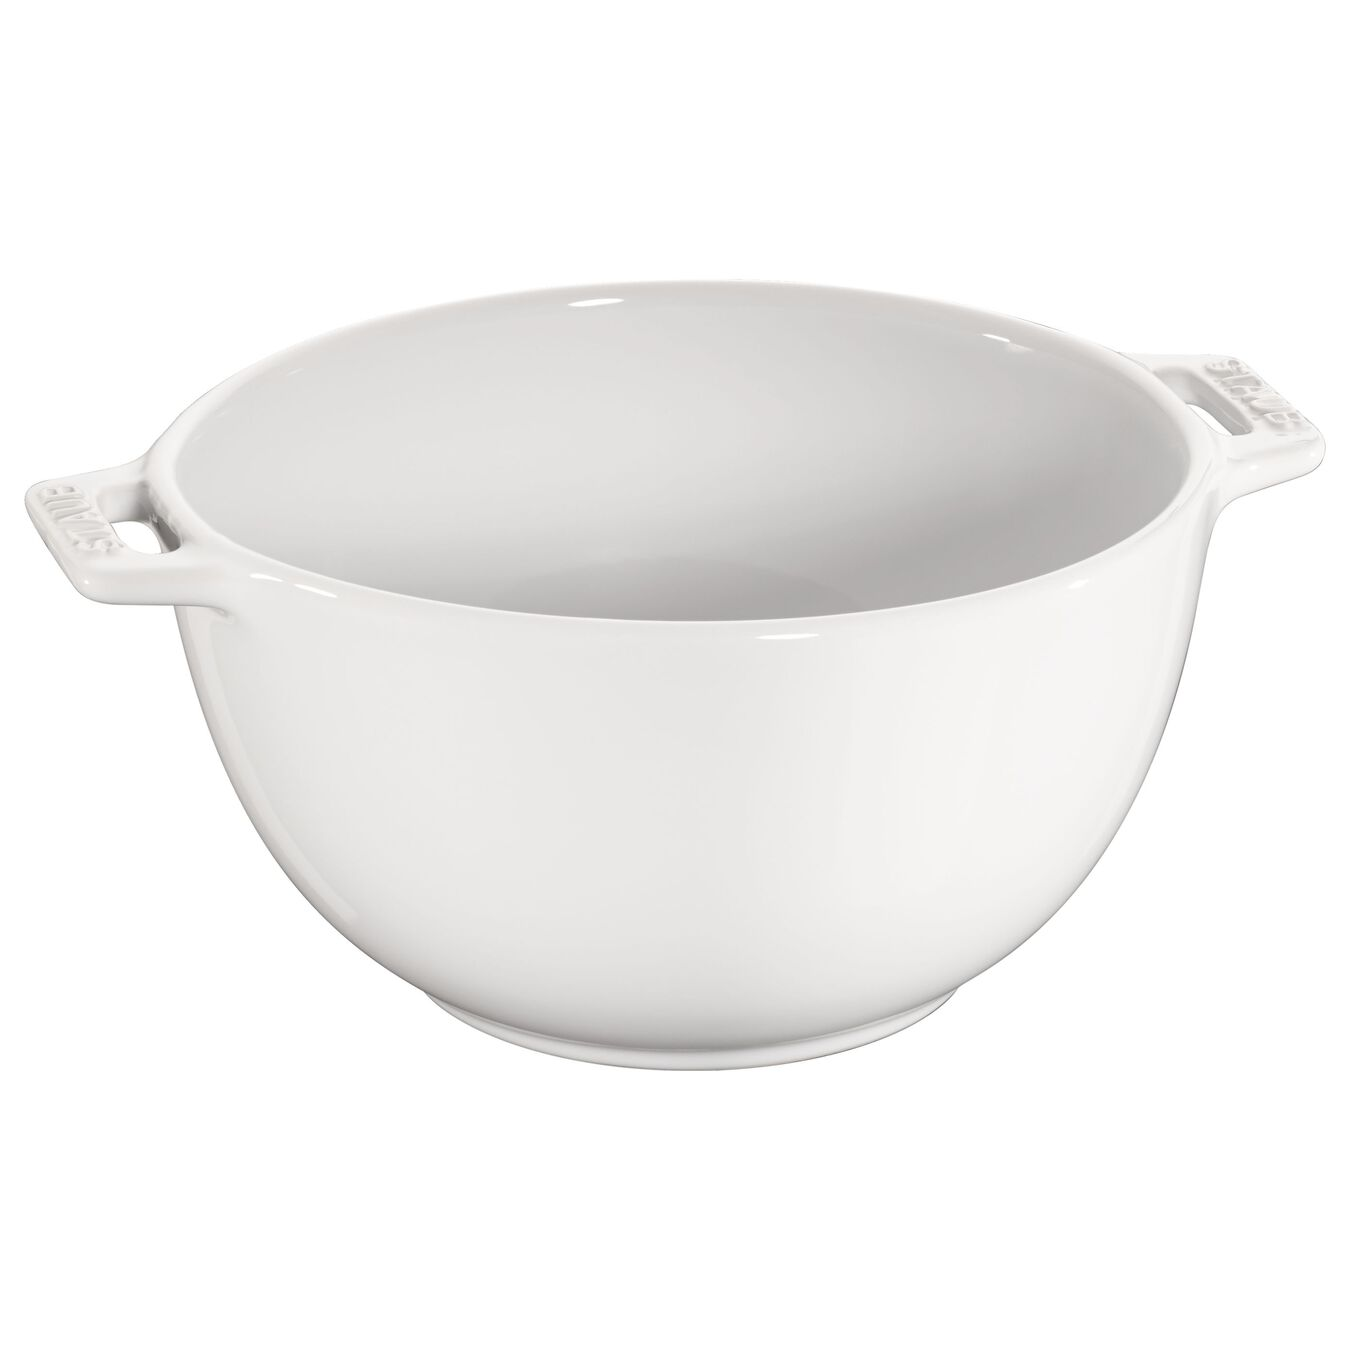 7-inch Small Serving Bowl - White,,large 1